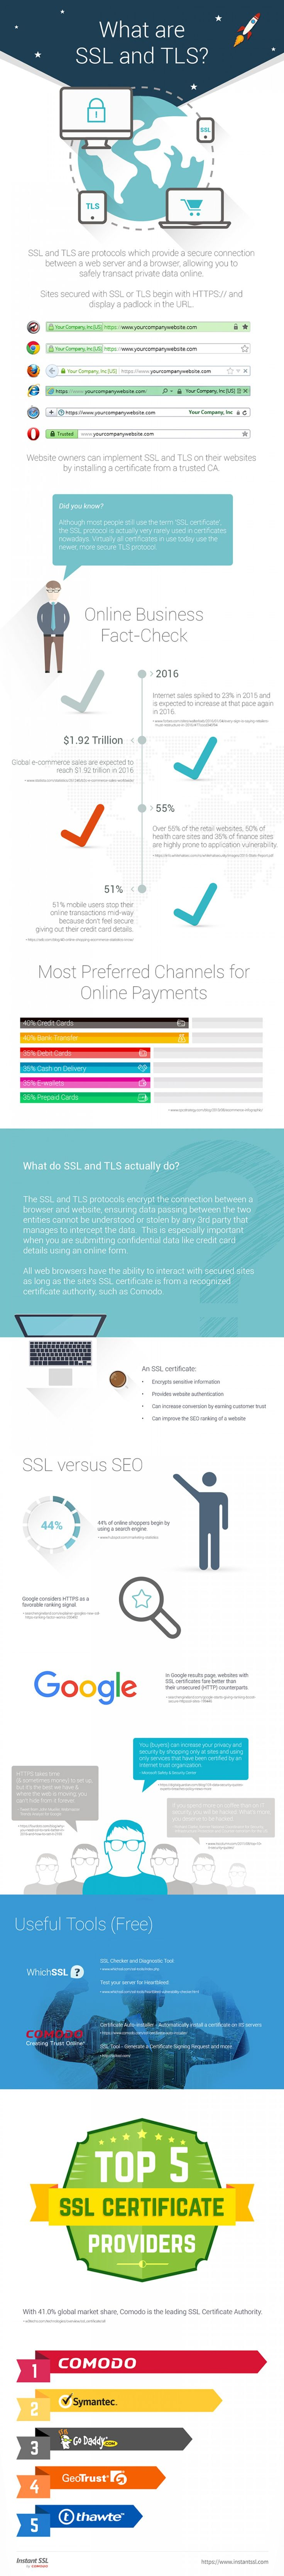 Infographic on SSL, TLS and how data encryption works. Must know facts in the times of mega data breaches.